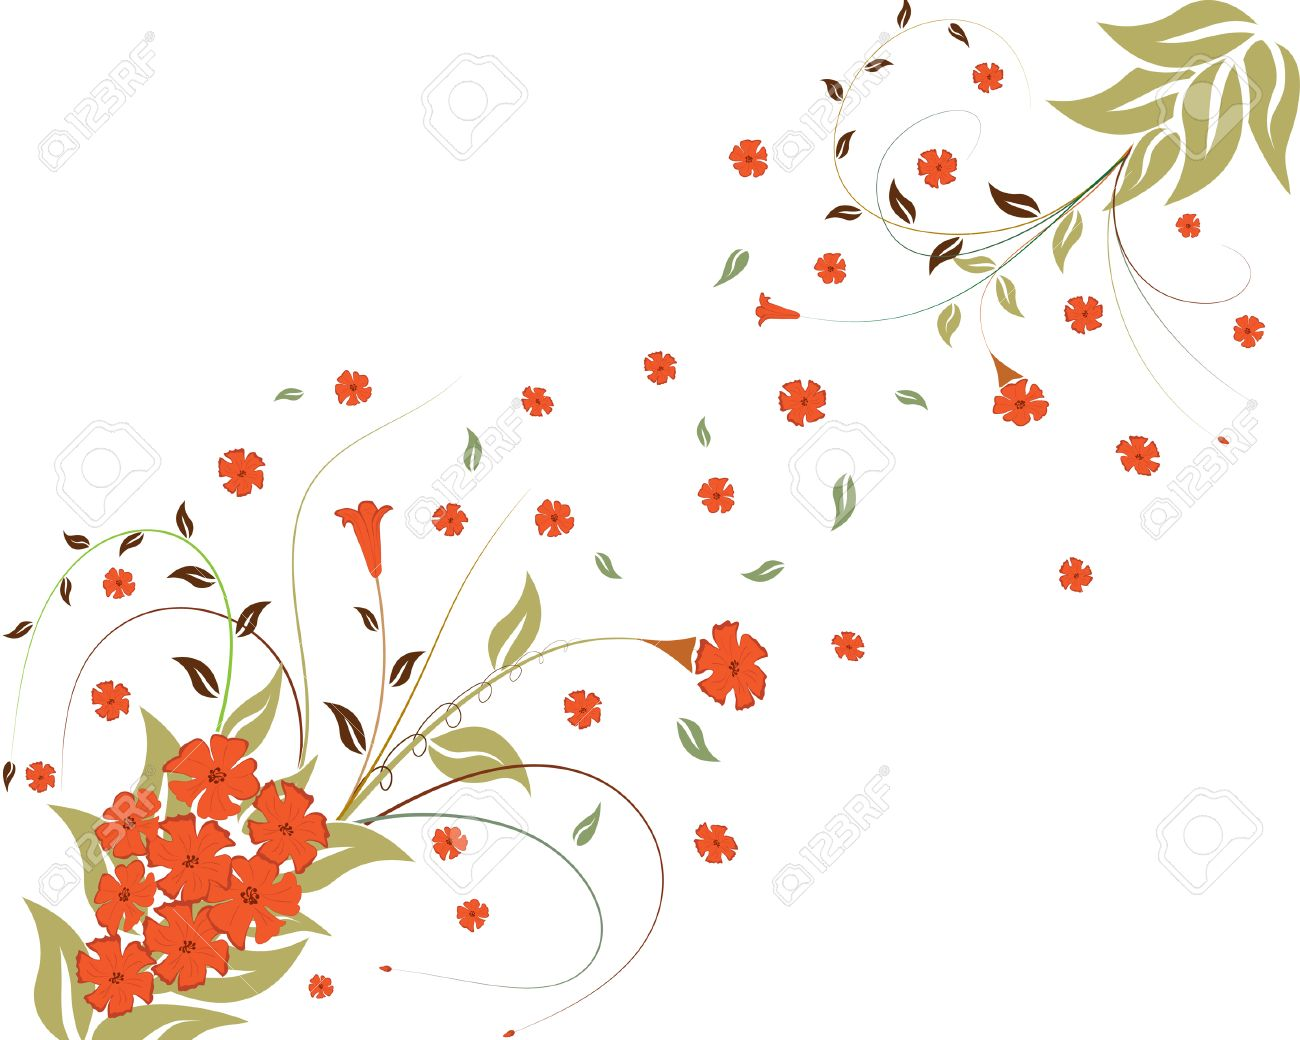 Spring floral vector ornament with leaves and flowers Stock Vector - 3212694